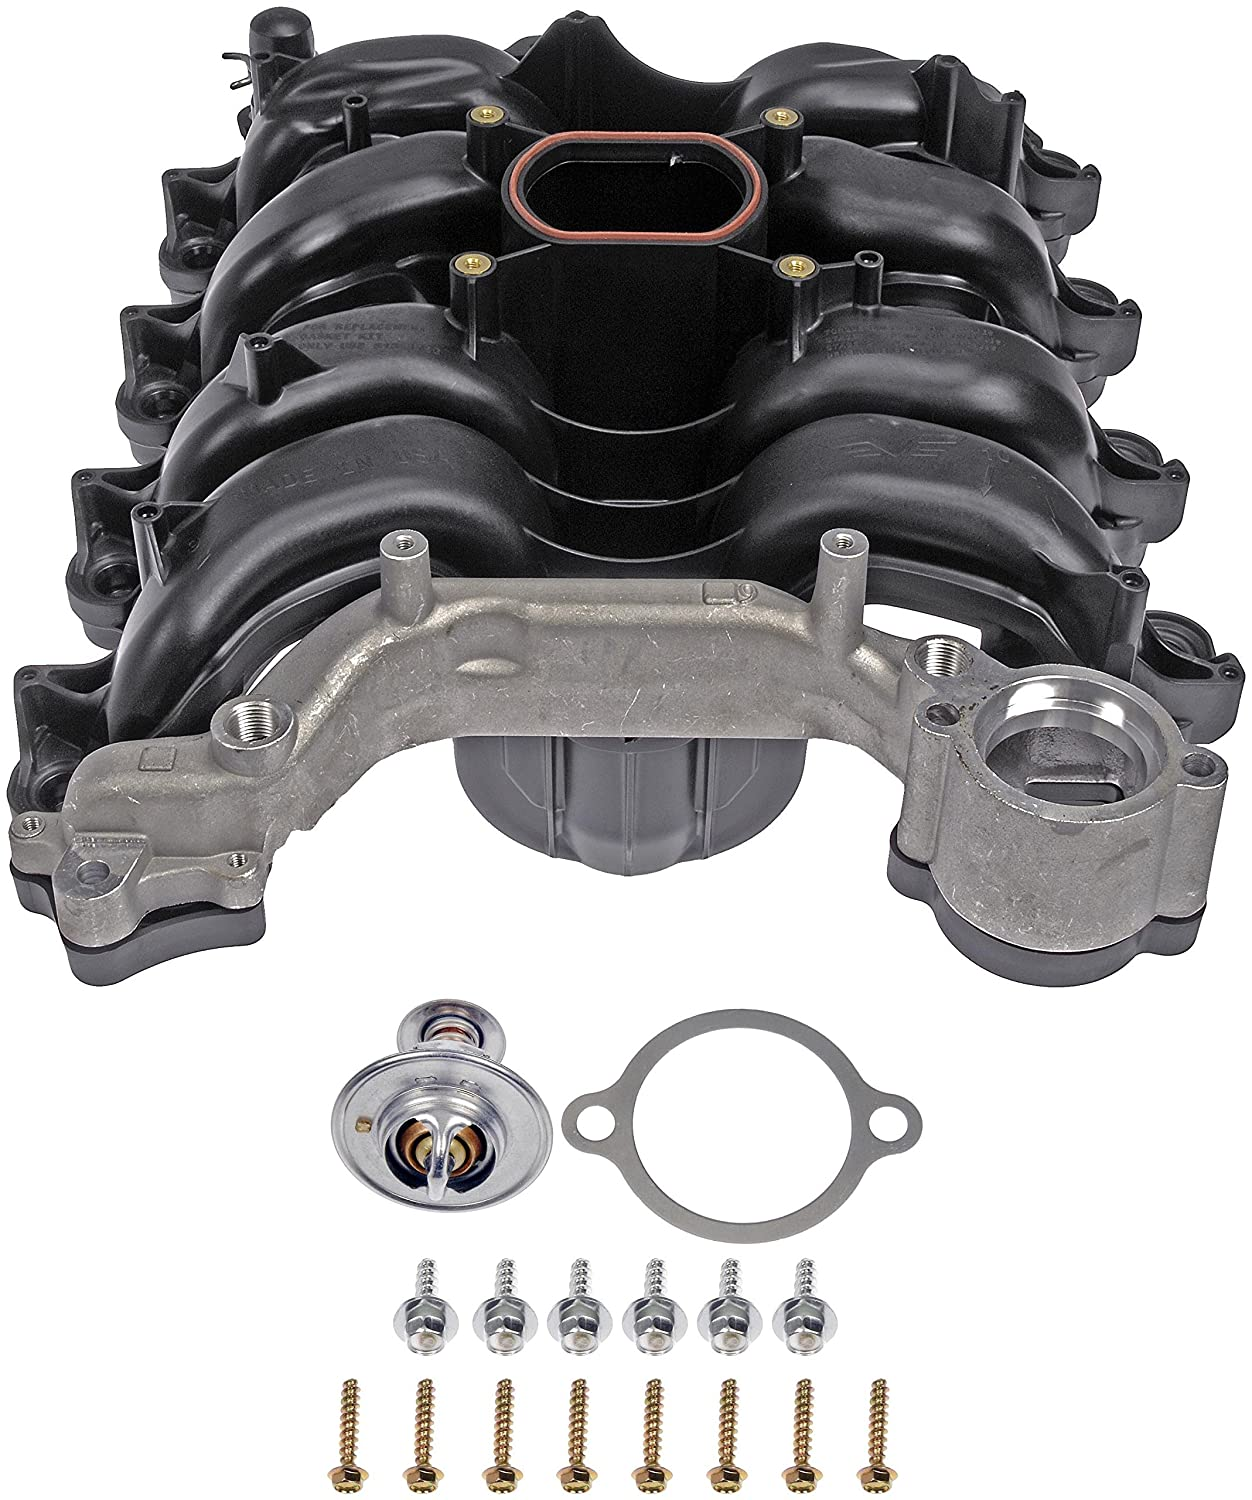 Renewed Dorman 615-175 Upper Intake Manifold for Select Ford//Lincoln//Mercury Models